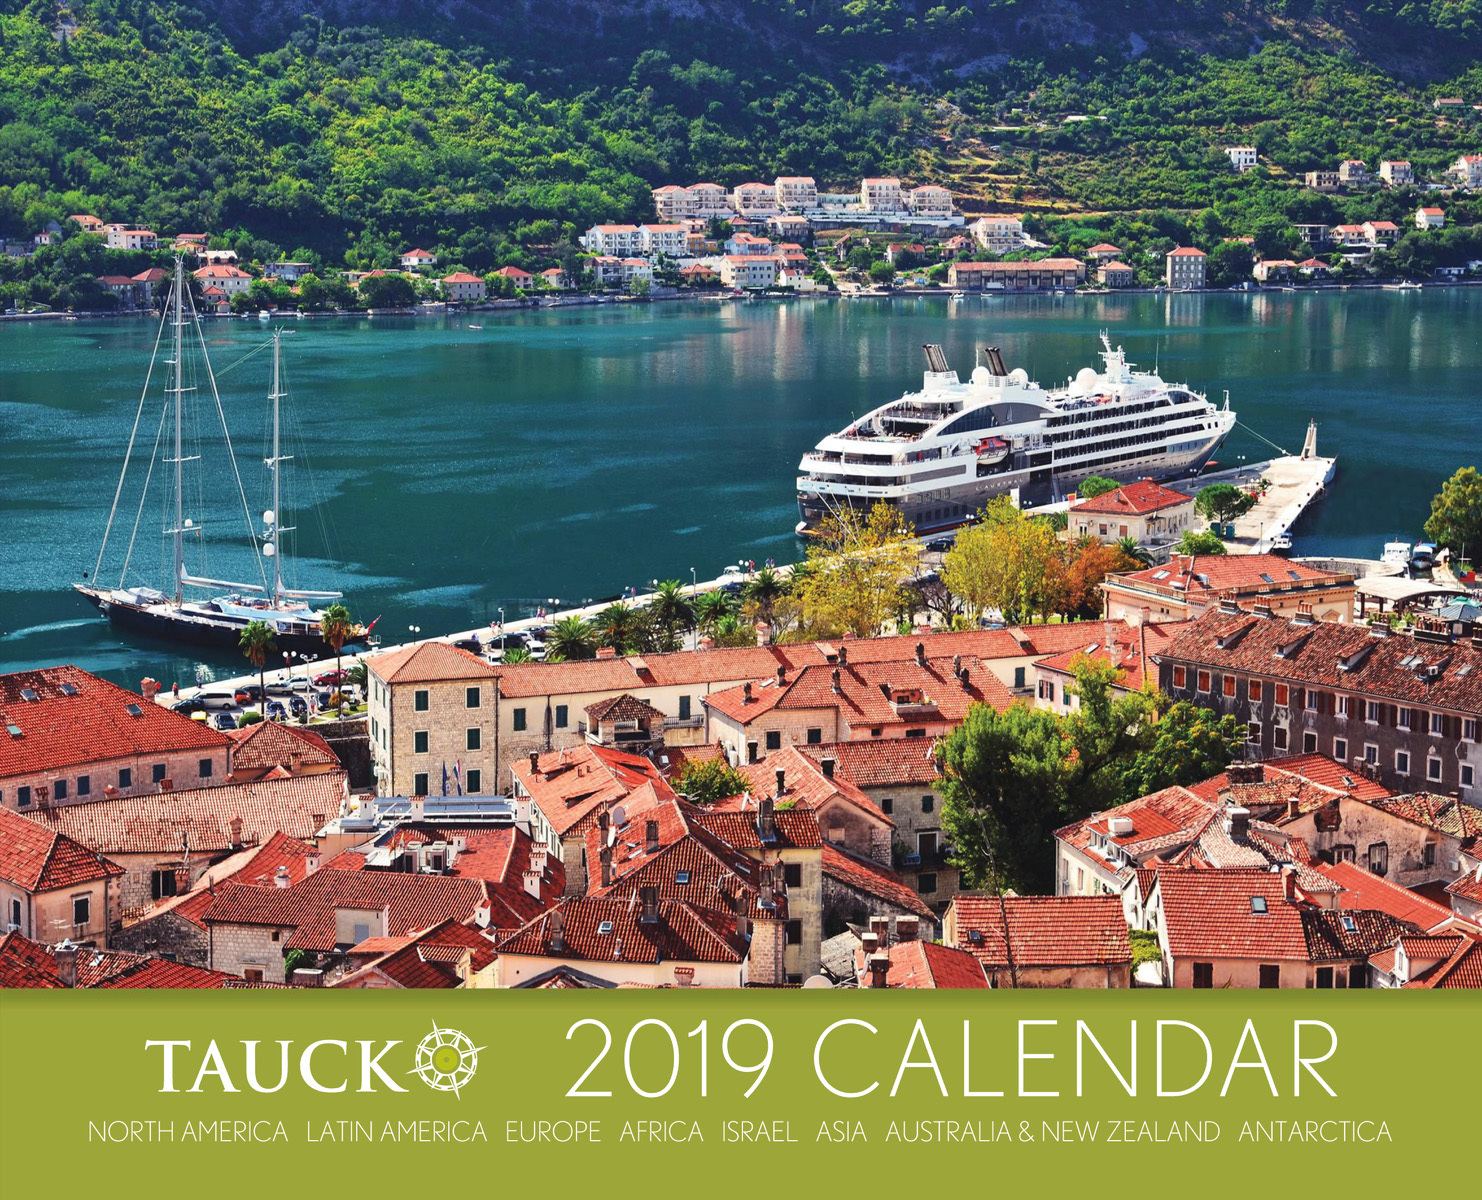 Pictures of Tauck 2021 Calendar